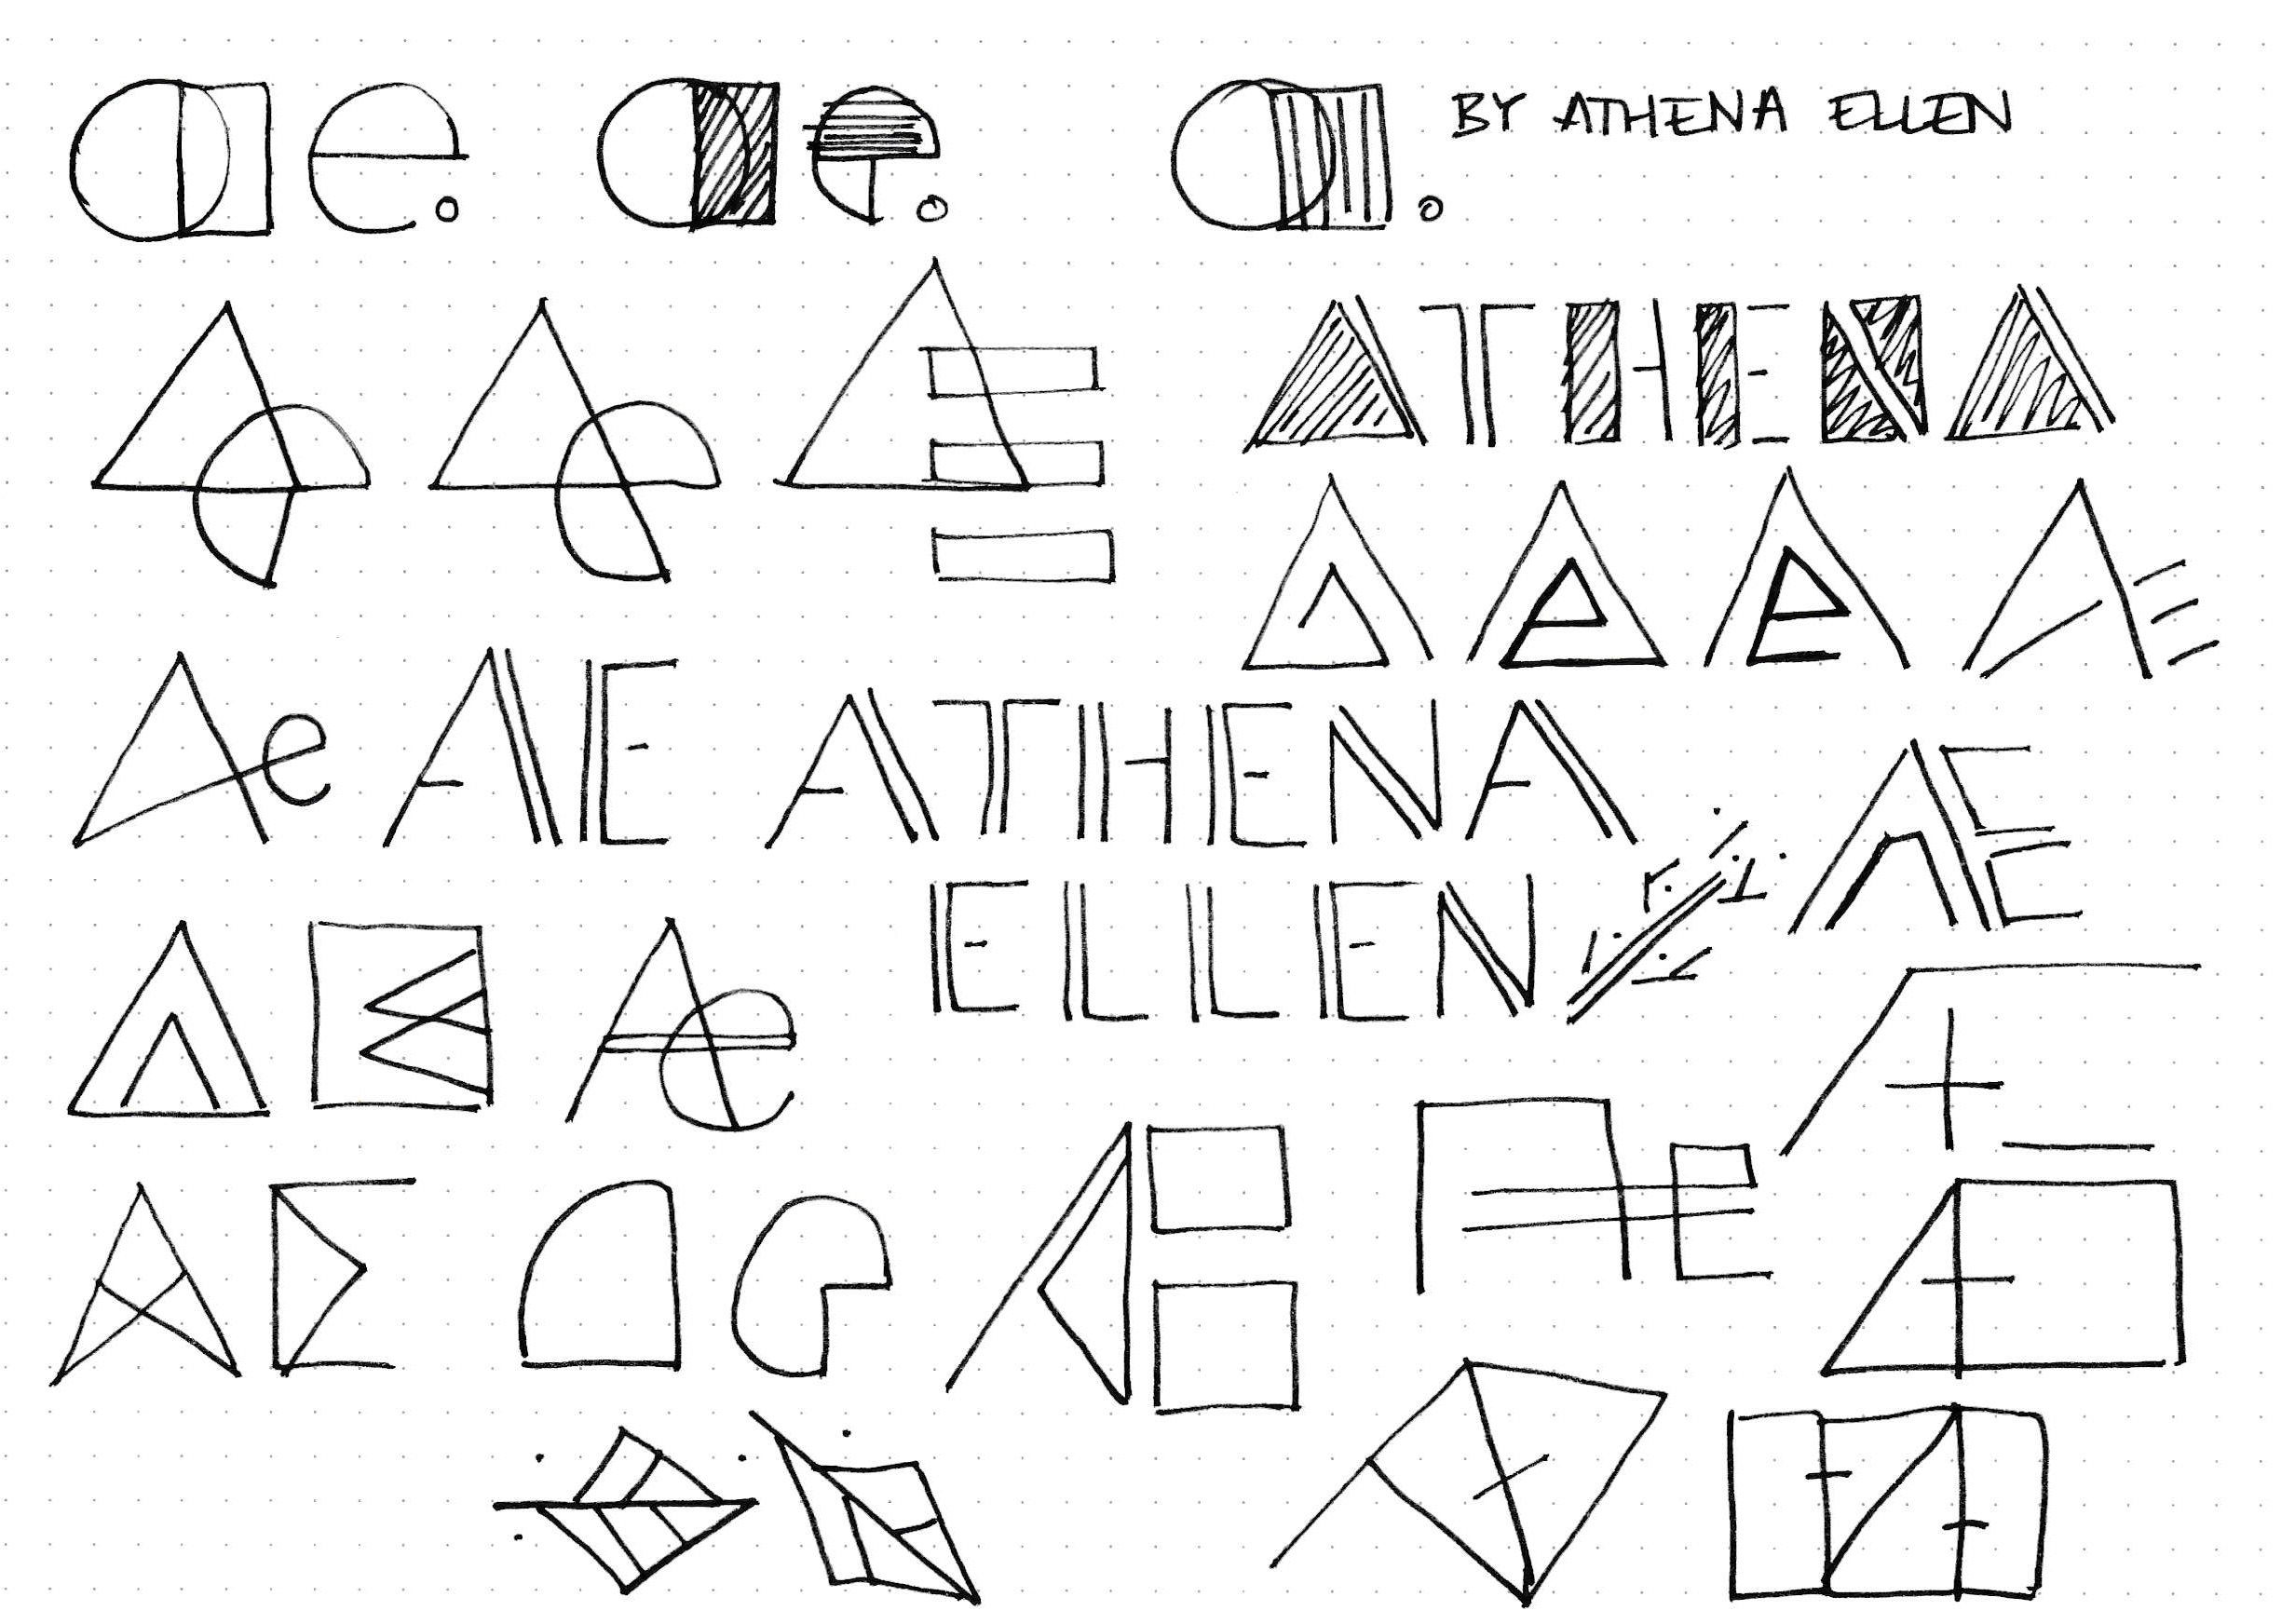 Early sketching exploring geometric, thin stroke styles